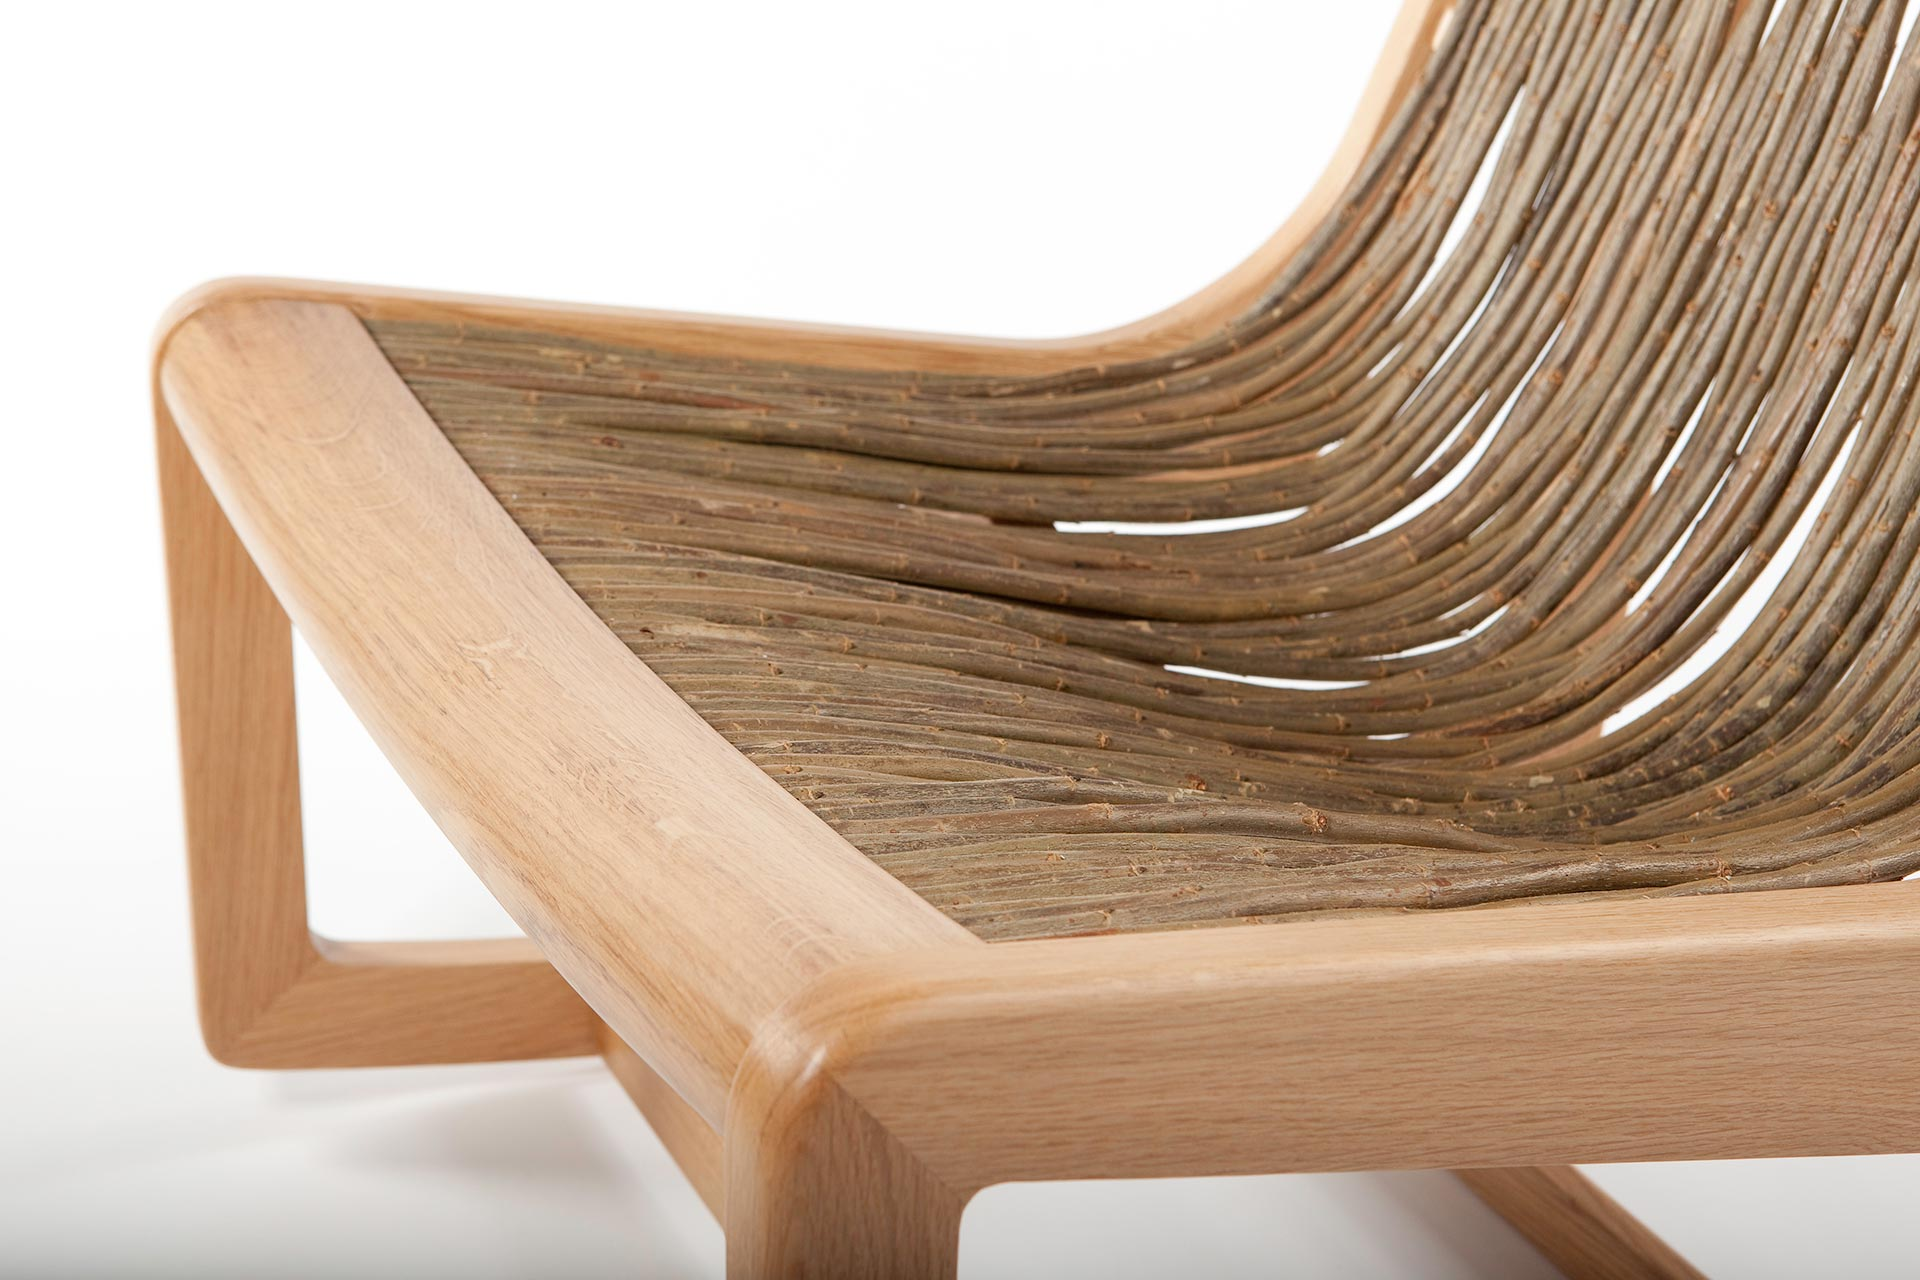 Handcrafted oak frame chair designed by Boex